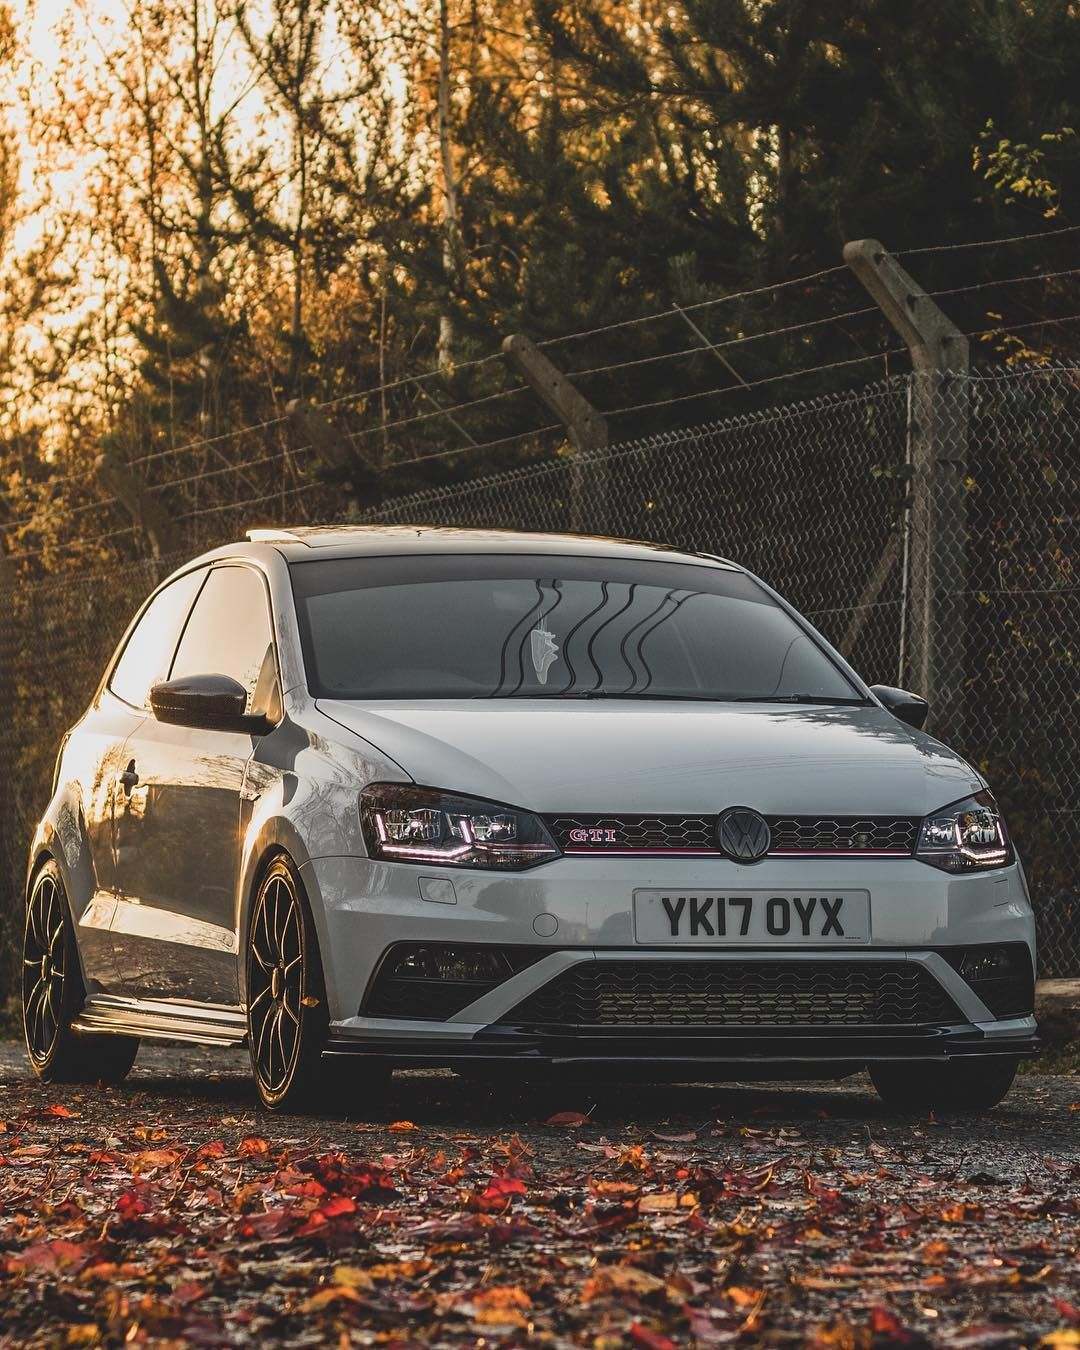 Lewisteale On Instagram Vw Pologti Polo6c The End The Time Has